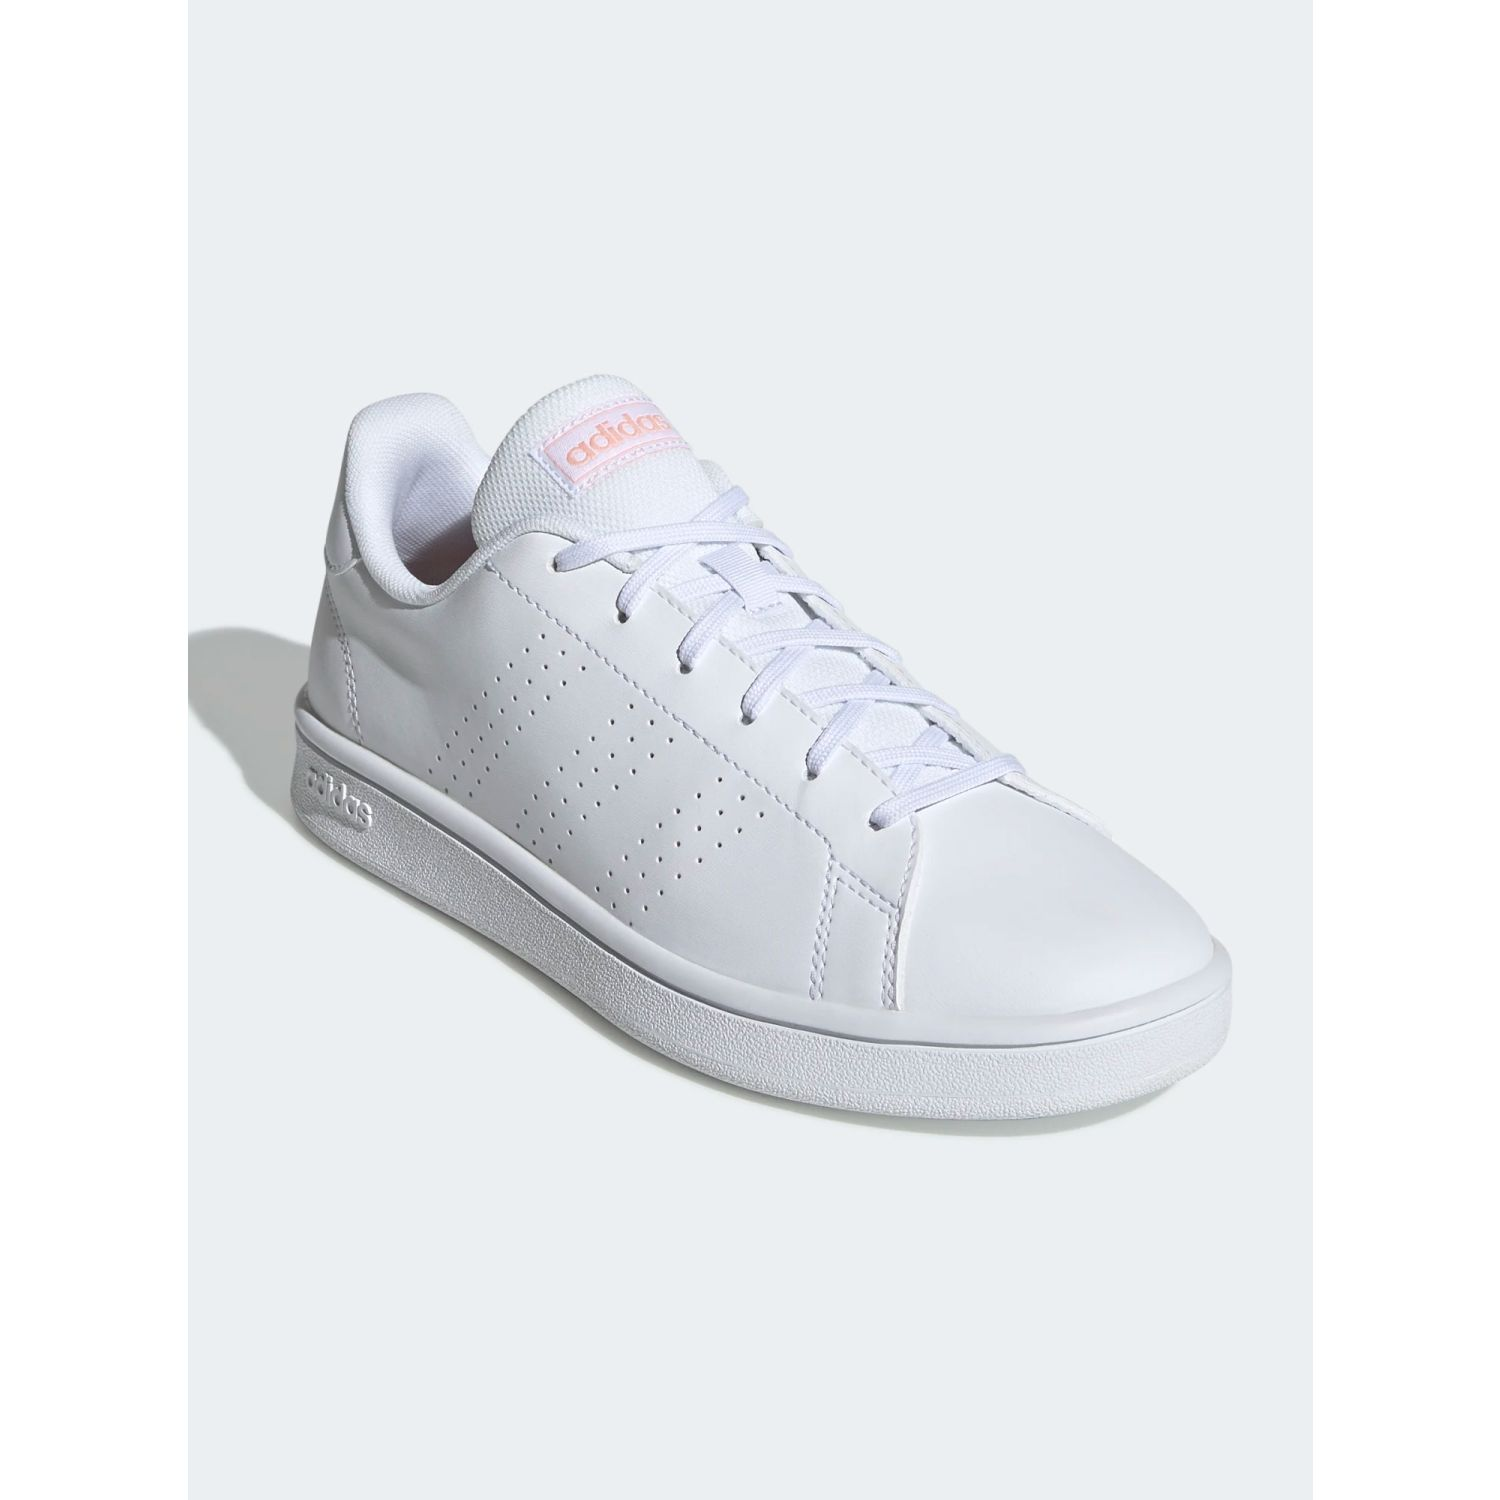 Adidas advantage base Blanco Mujeres | platanitos.com